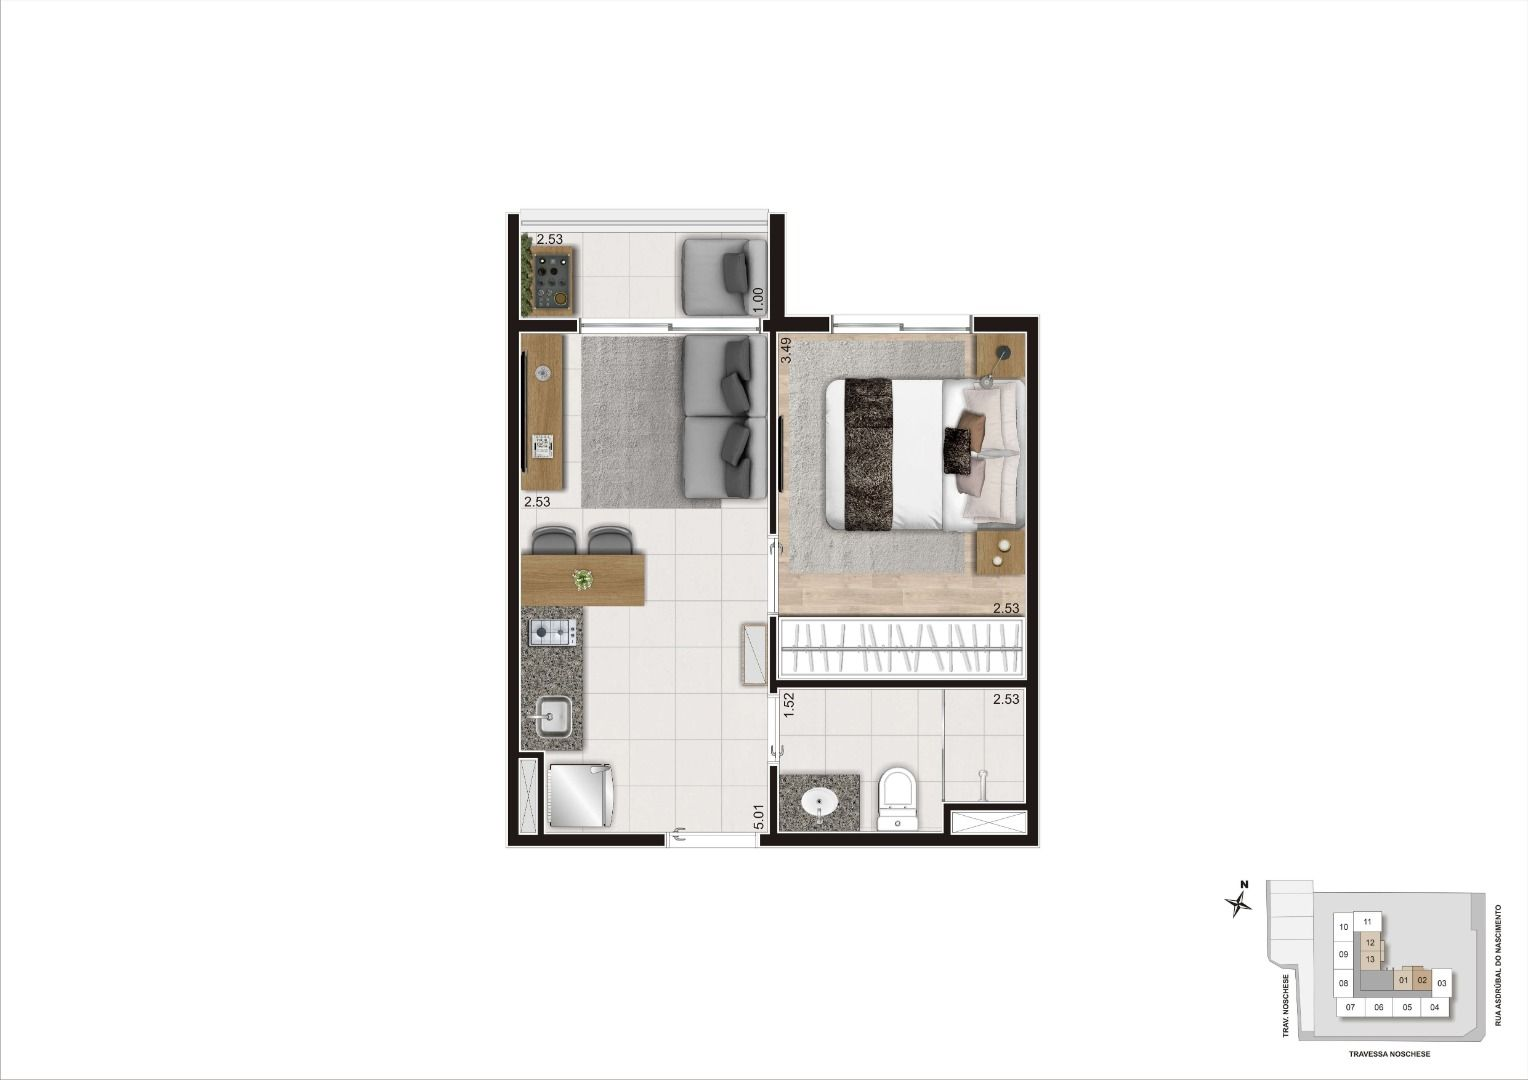 Planta do Today Brigadeiro. floorplan